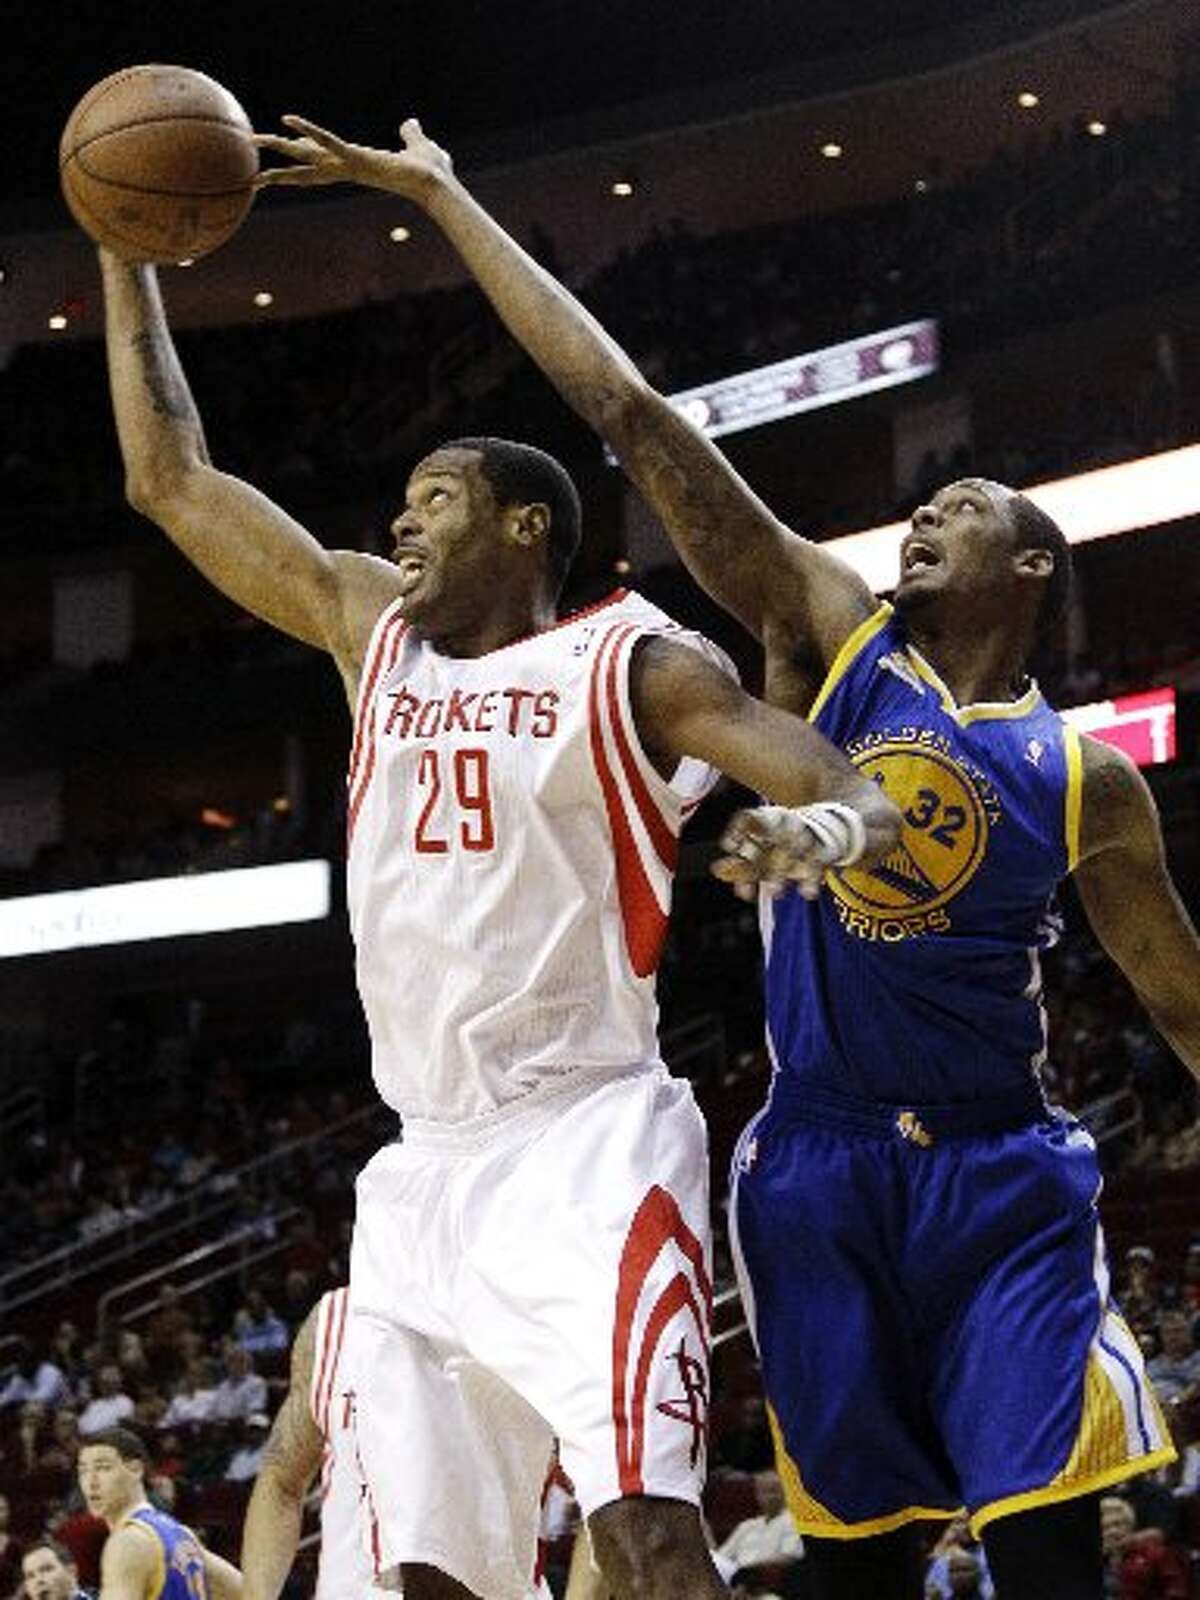 Veteran Marcus Camby, left, joined the Rockets for 19 games in the spring of 2012, then played 24 for the Knicks last season, averaging 10 minutes per contest.